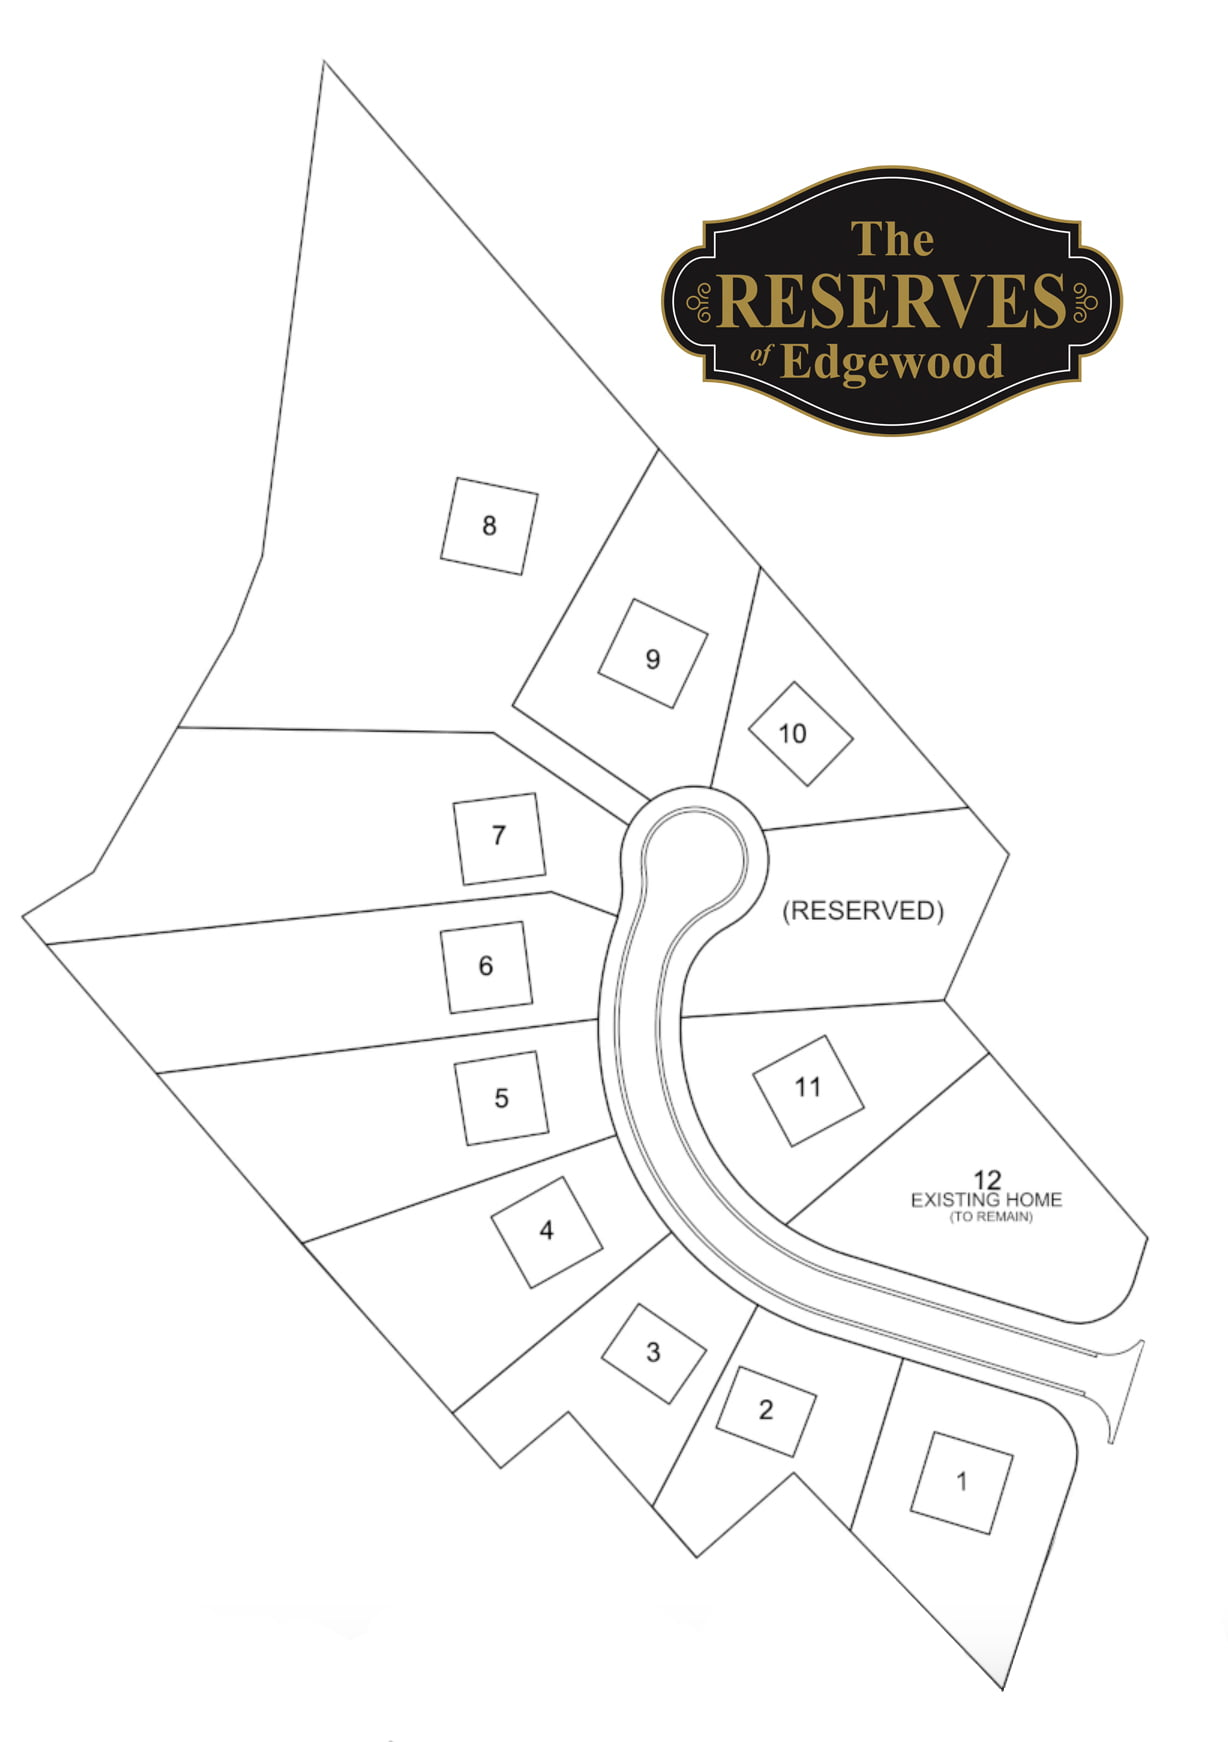 reserves-of-edgewood-land-plots